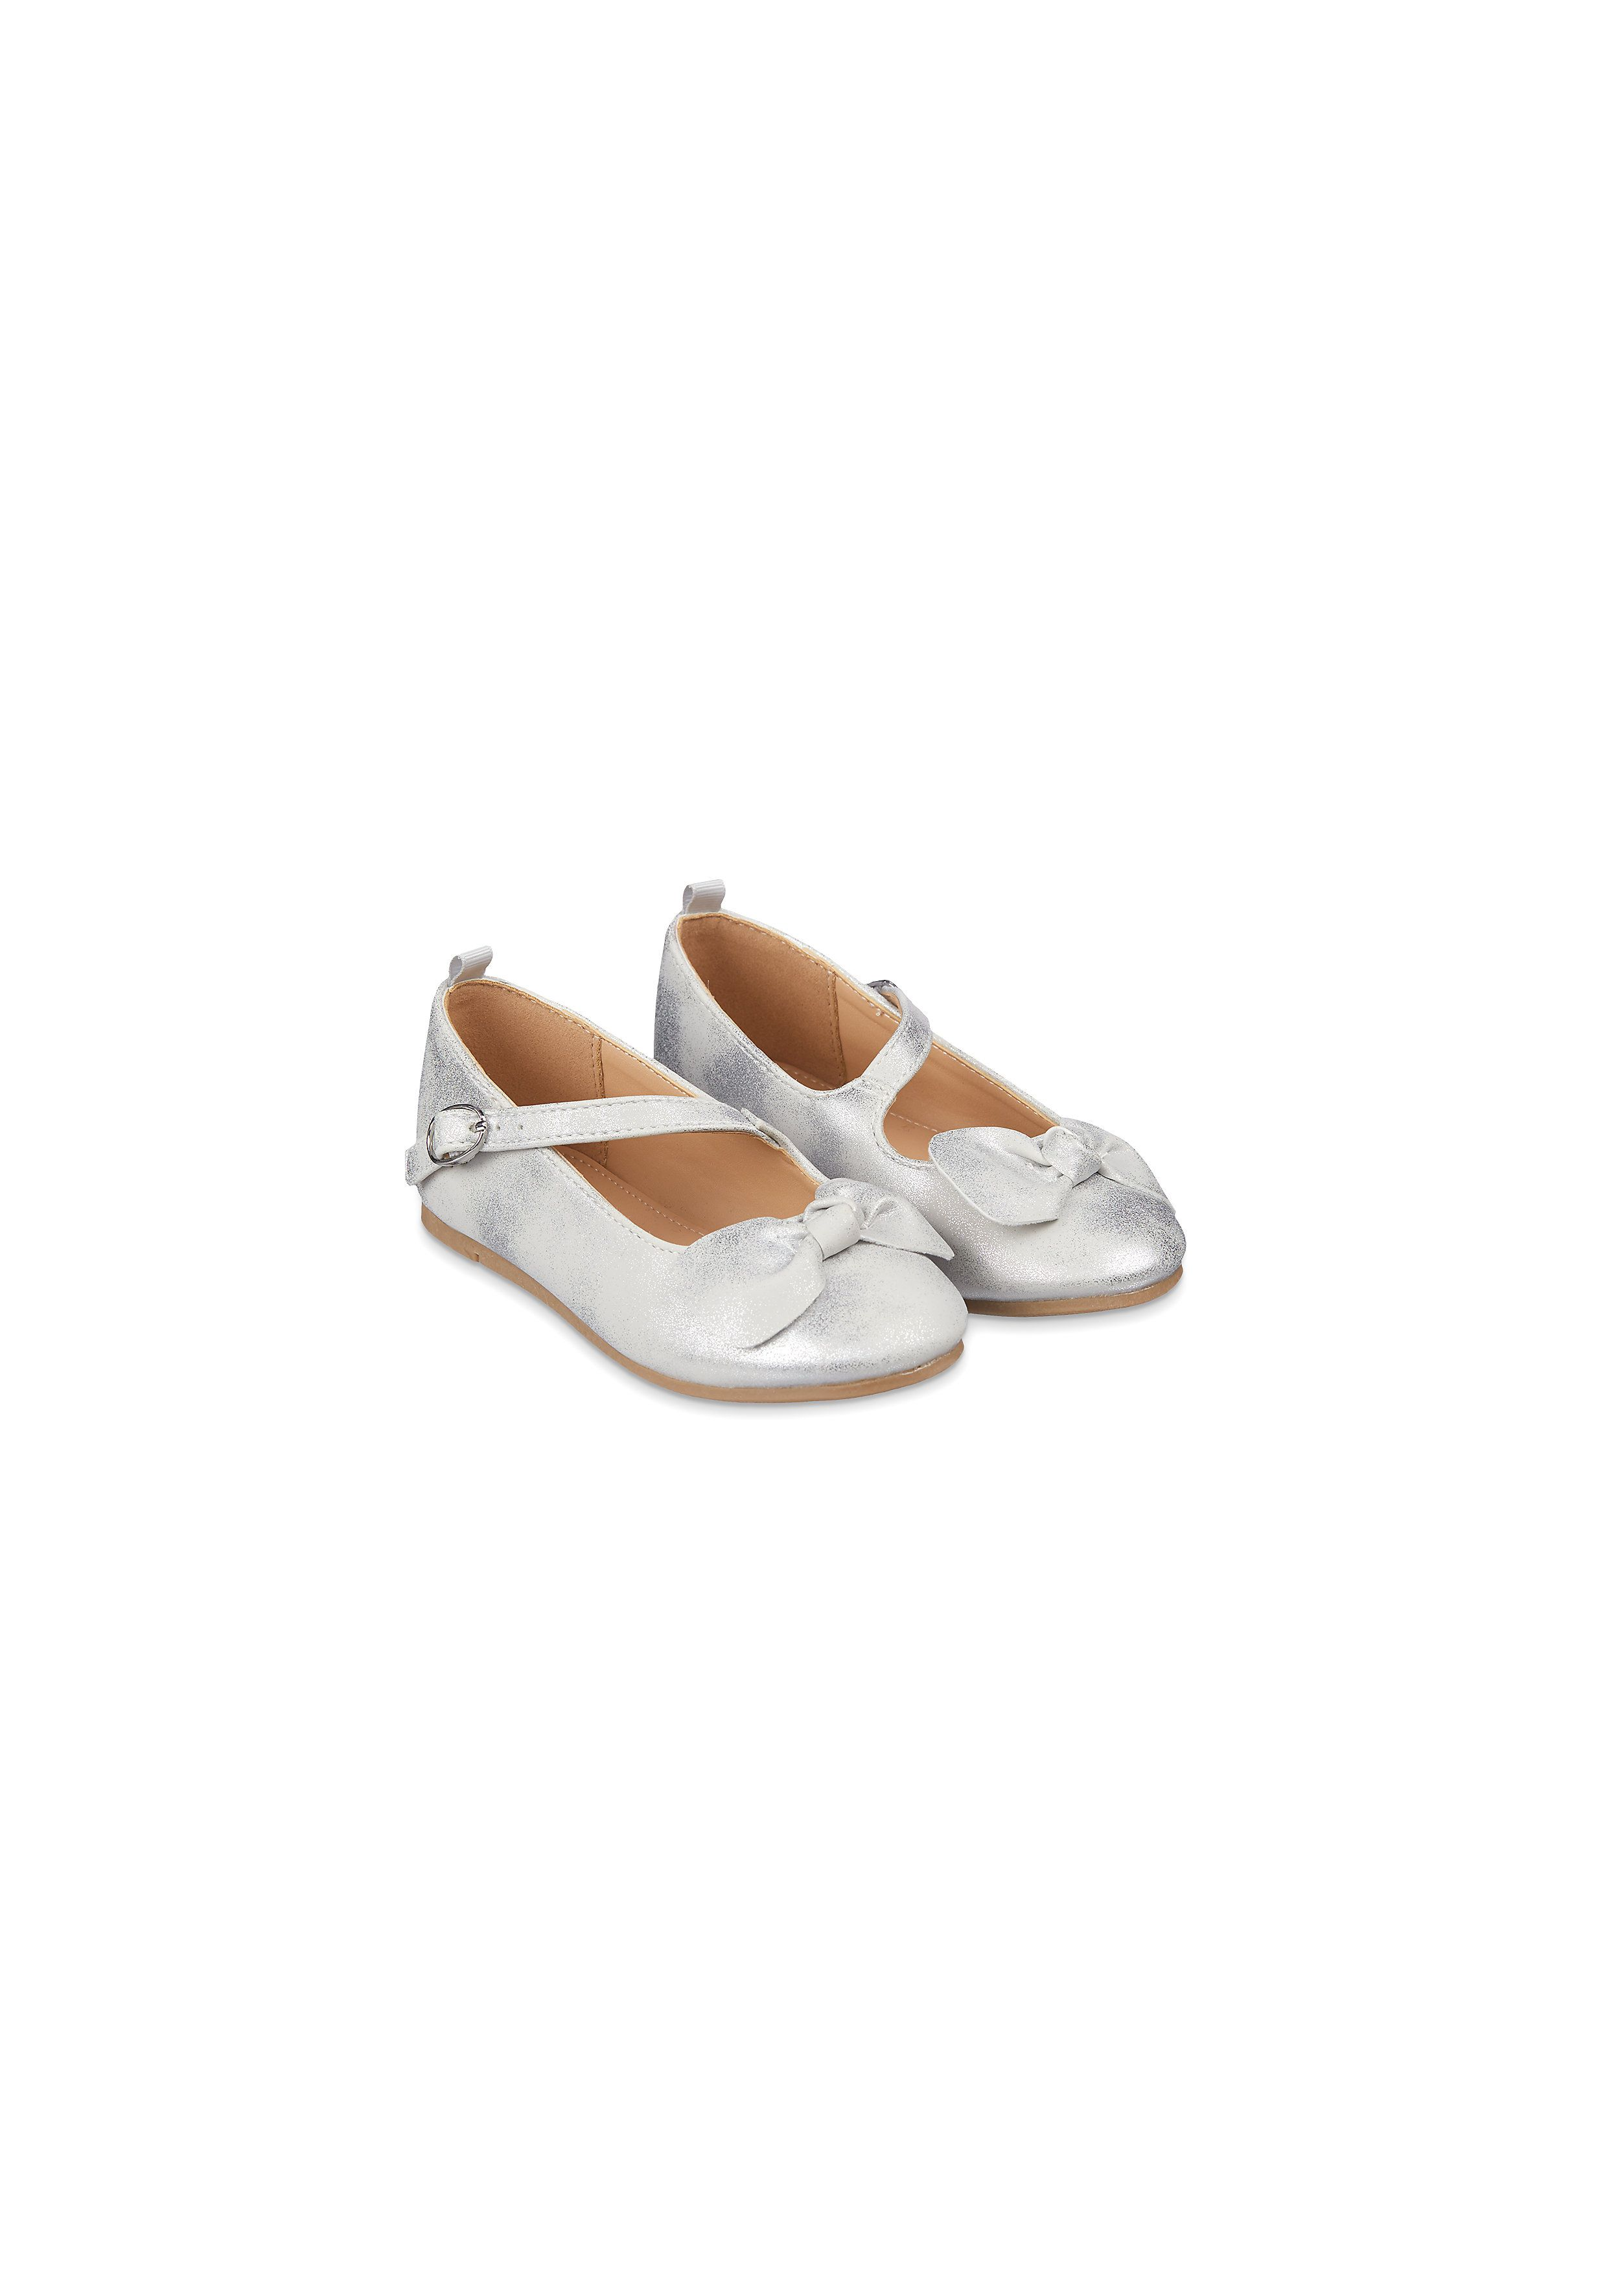 Mothercare | Girls Shimmery Silver Bow Ballerina Shoes - Silver